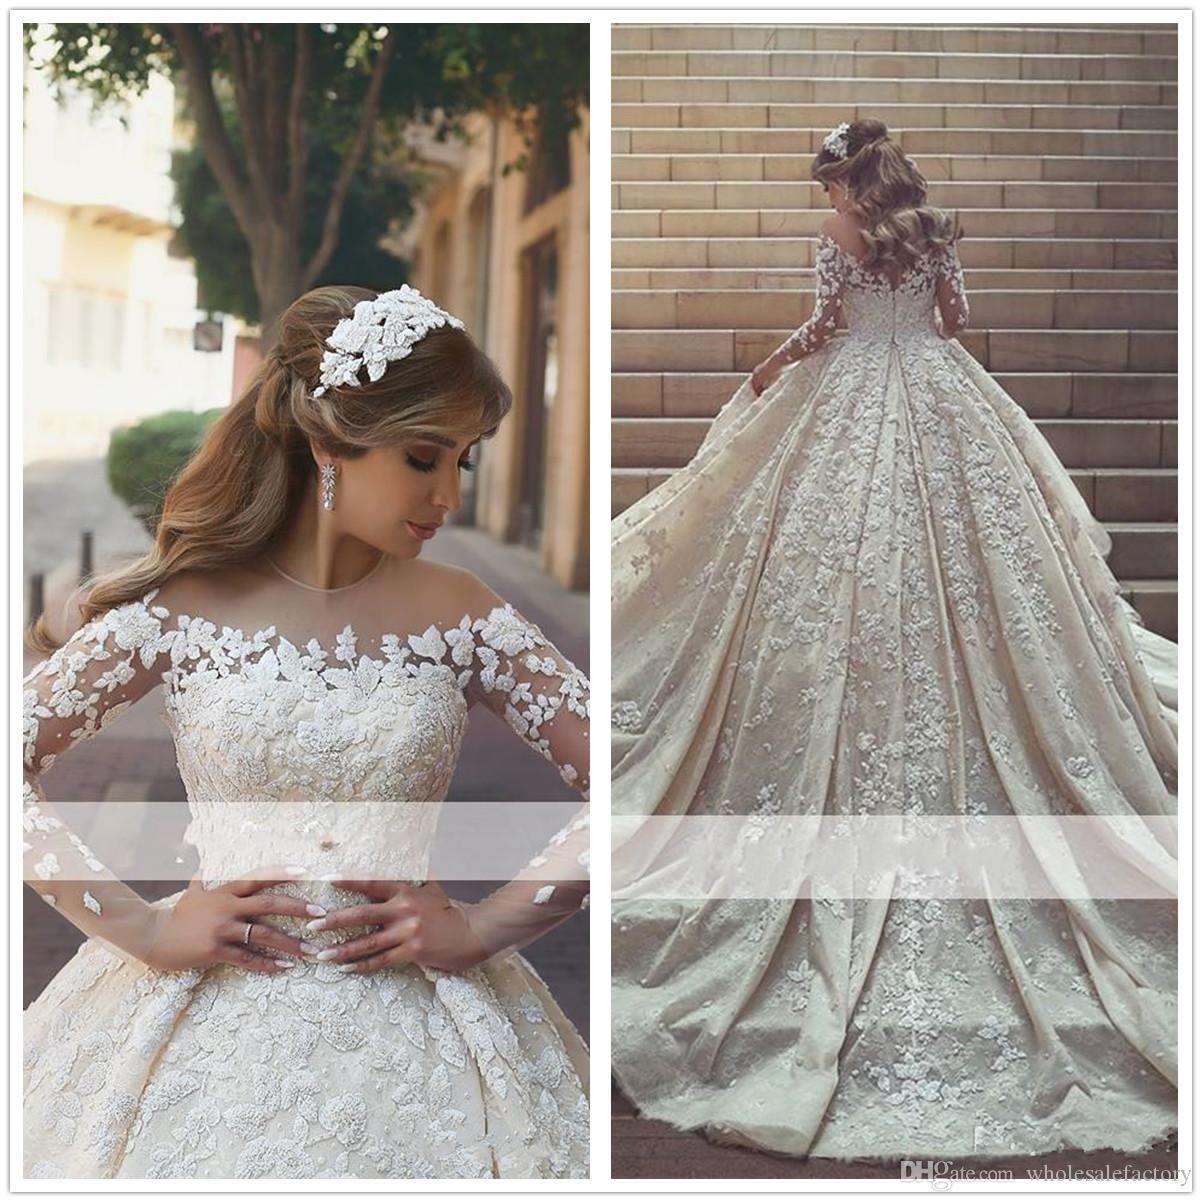 d833aa76a 2018 Arabic Sheer Long Sleeves Lace Ball Gown Wedding Dresses Ruched  Applique Beaded Stones Sweep Train Bridal Wedding Gowns Wedding Dresses  2014 Ball Gown ...